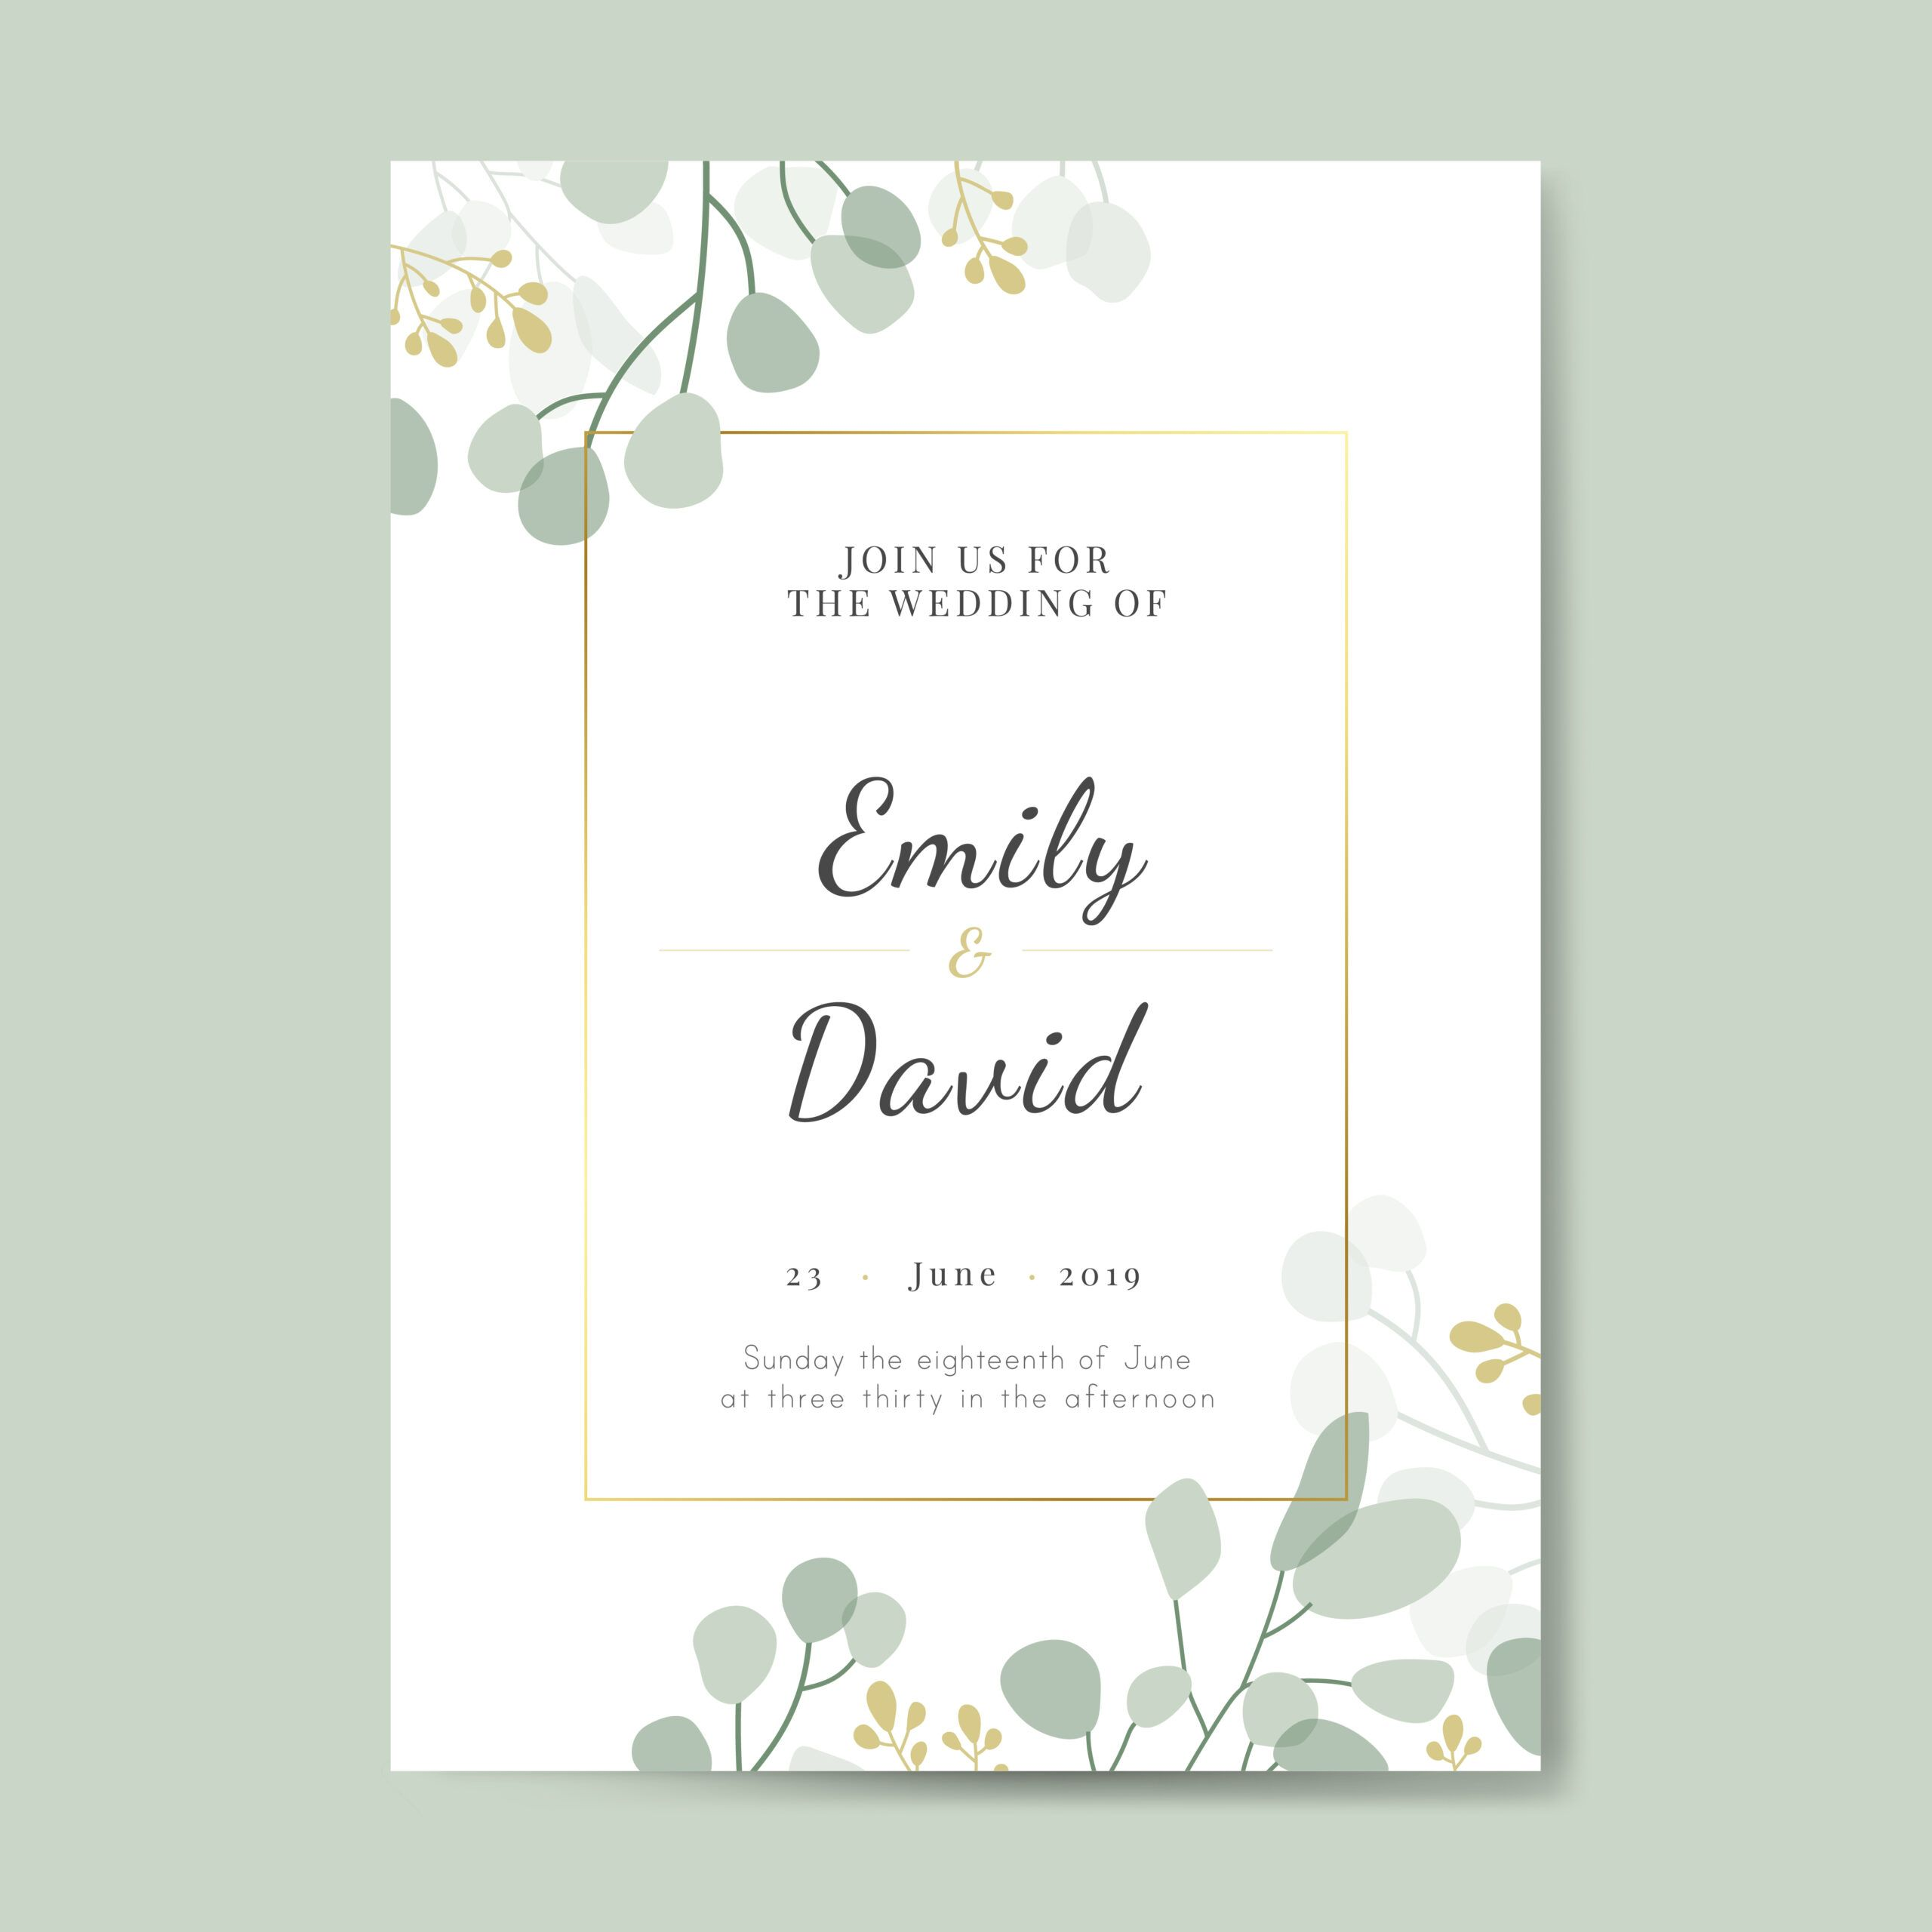 Formal Invitation Card Template Free Download  Wedding invitation